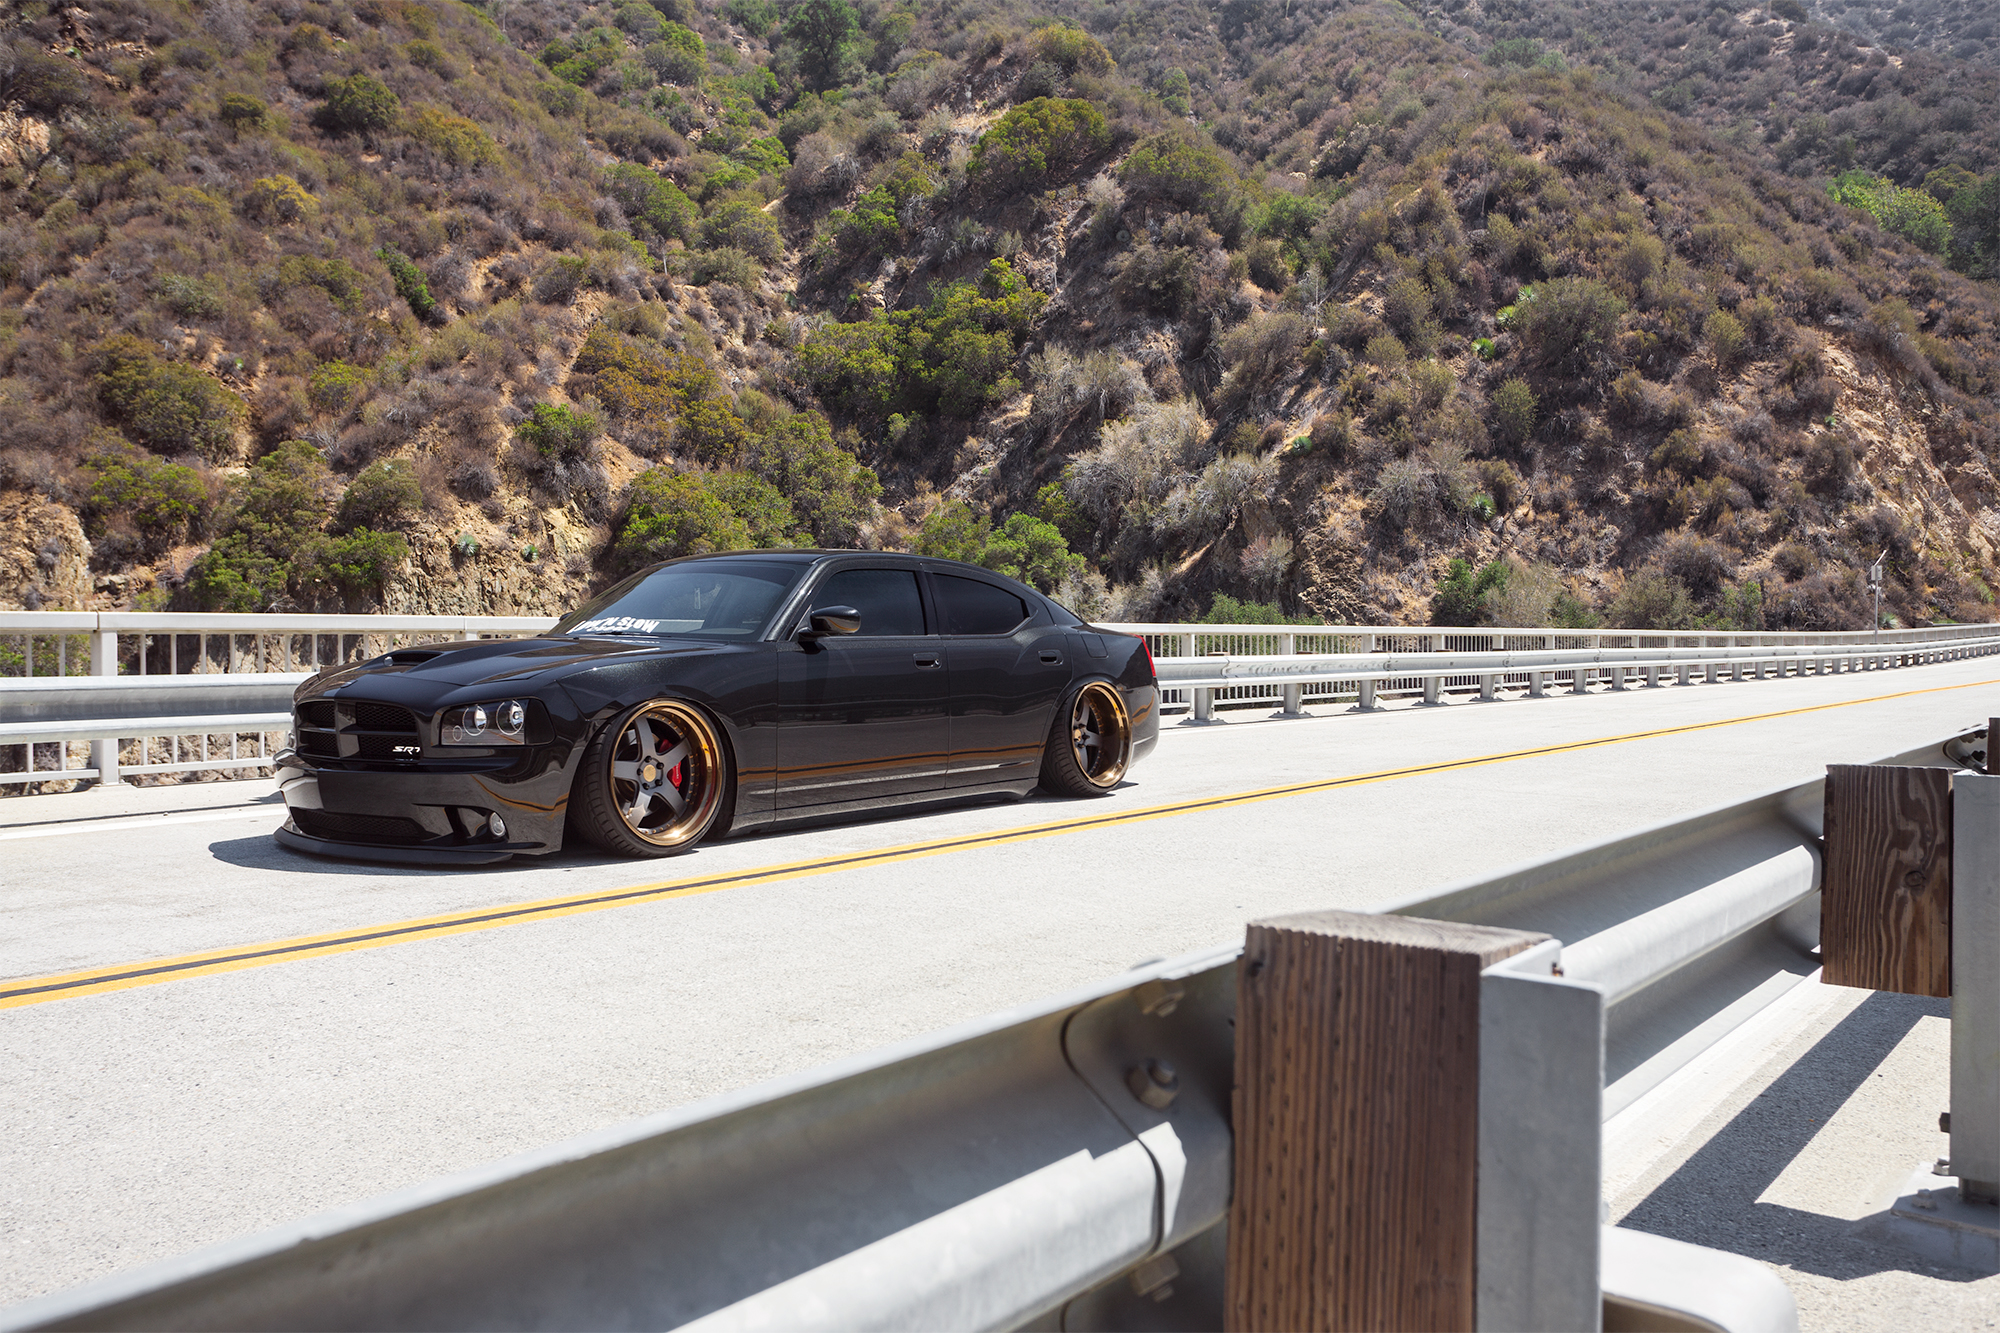 Bagged Charger Srt8 Rides Magazine